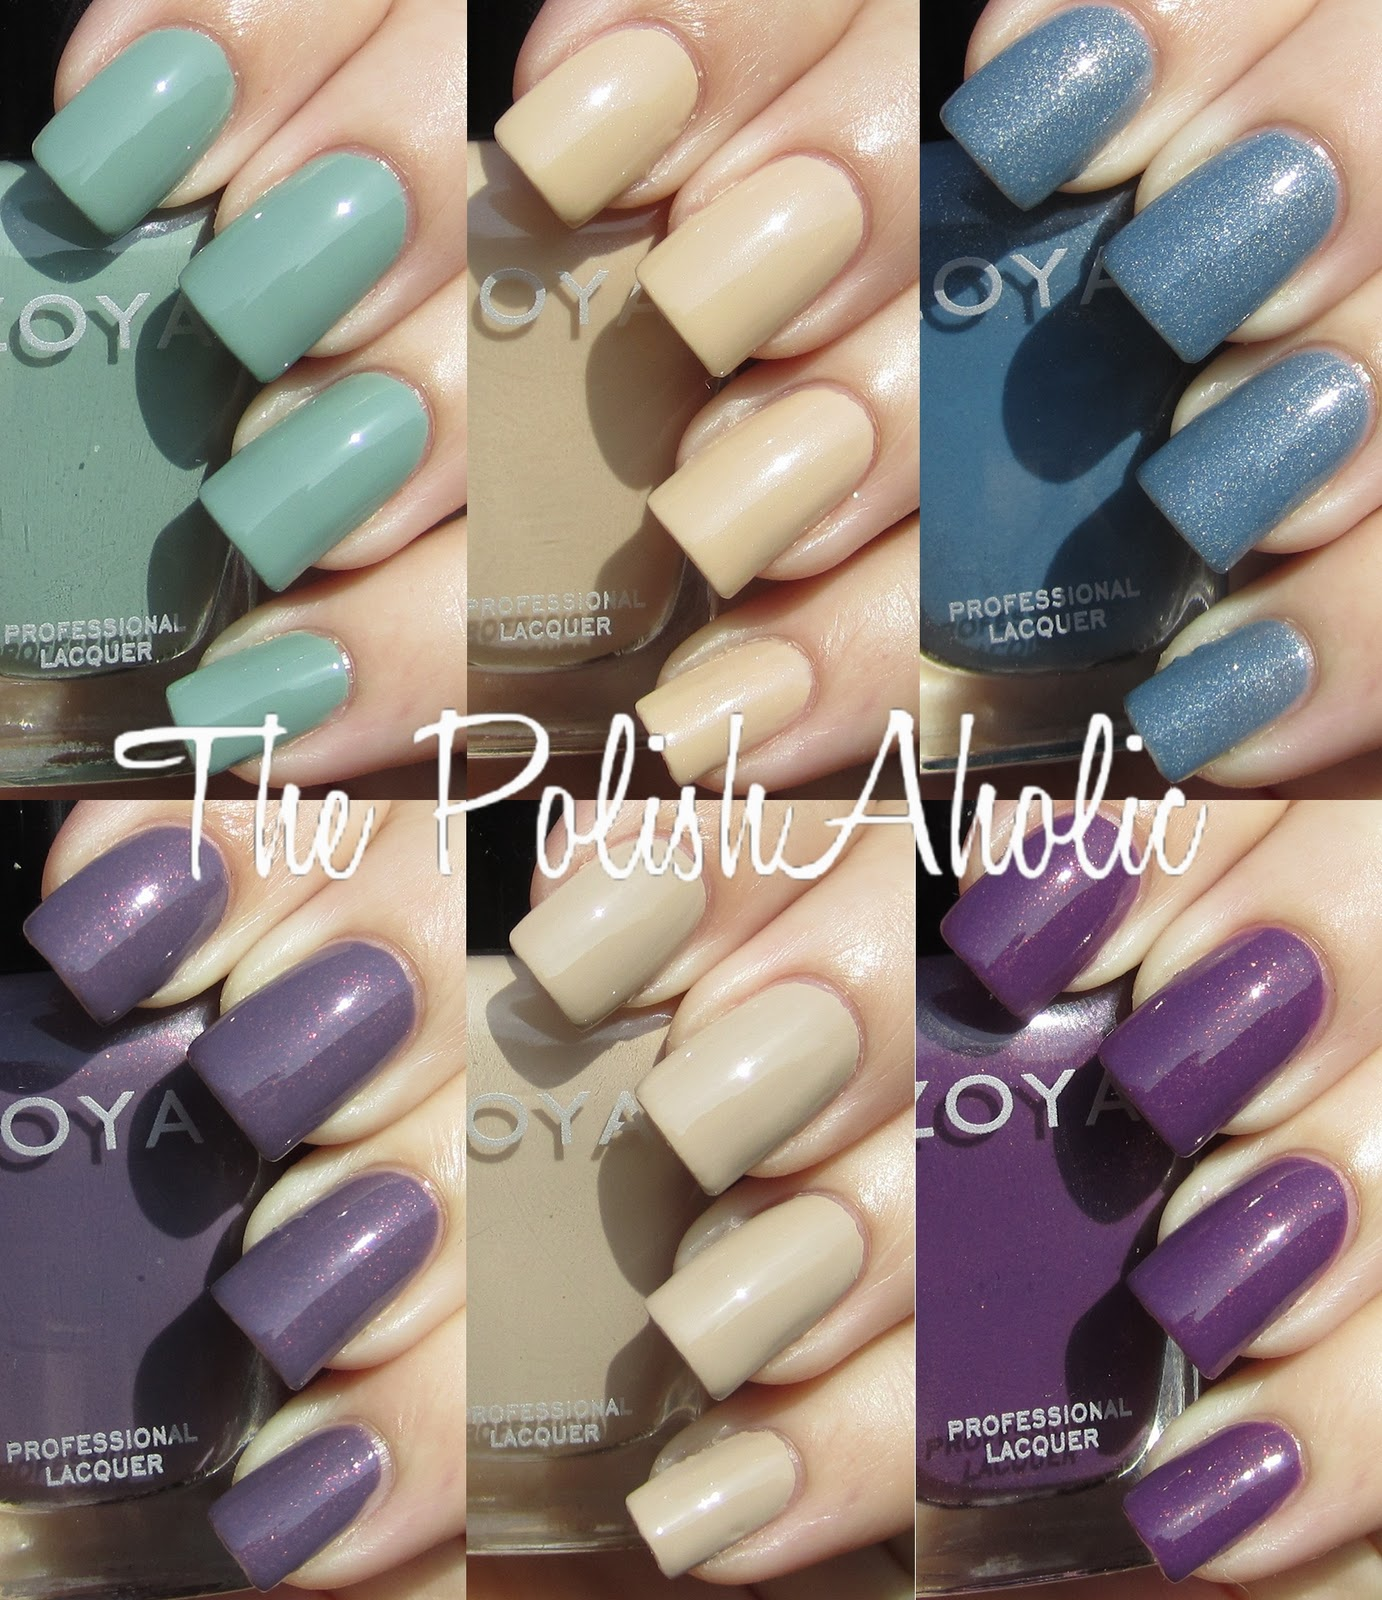 The polishaholic zoya spring 2012 true collection swatches zoya spring 2012 true collection swatches reheart Choice Image